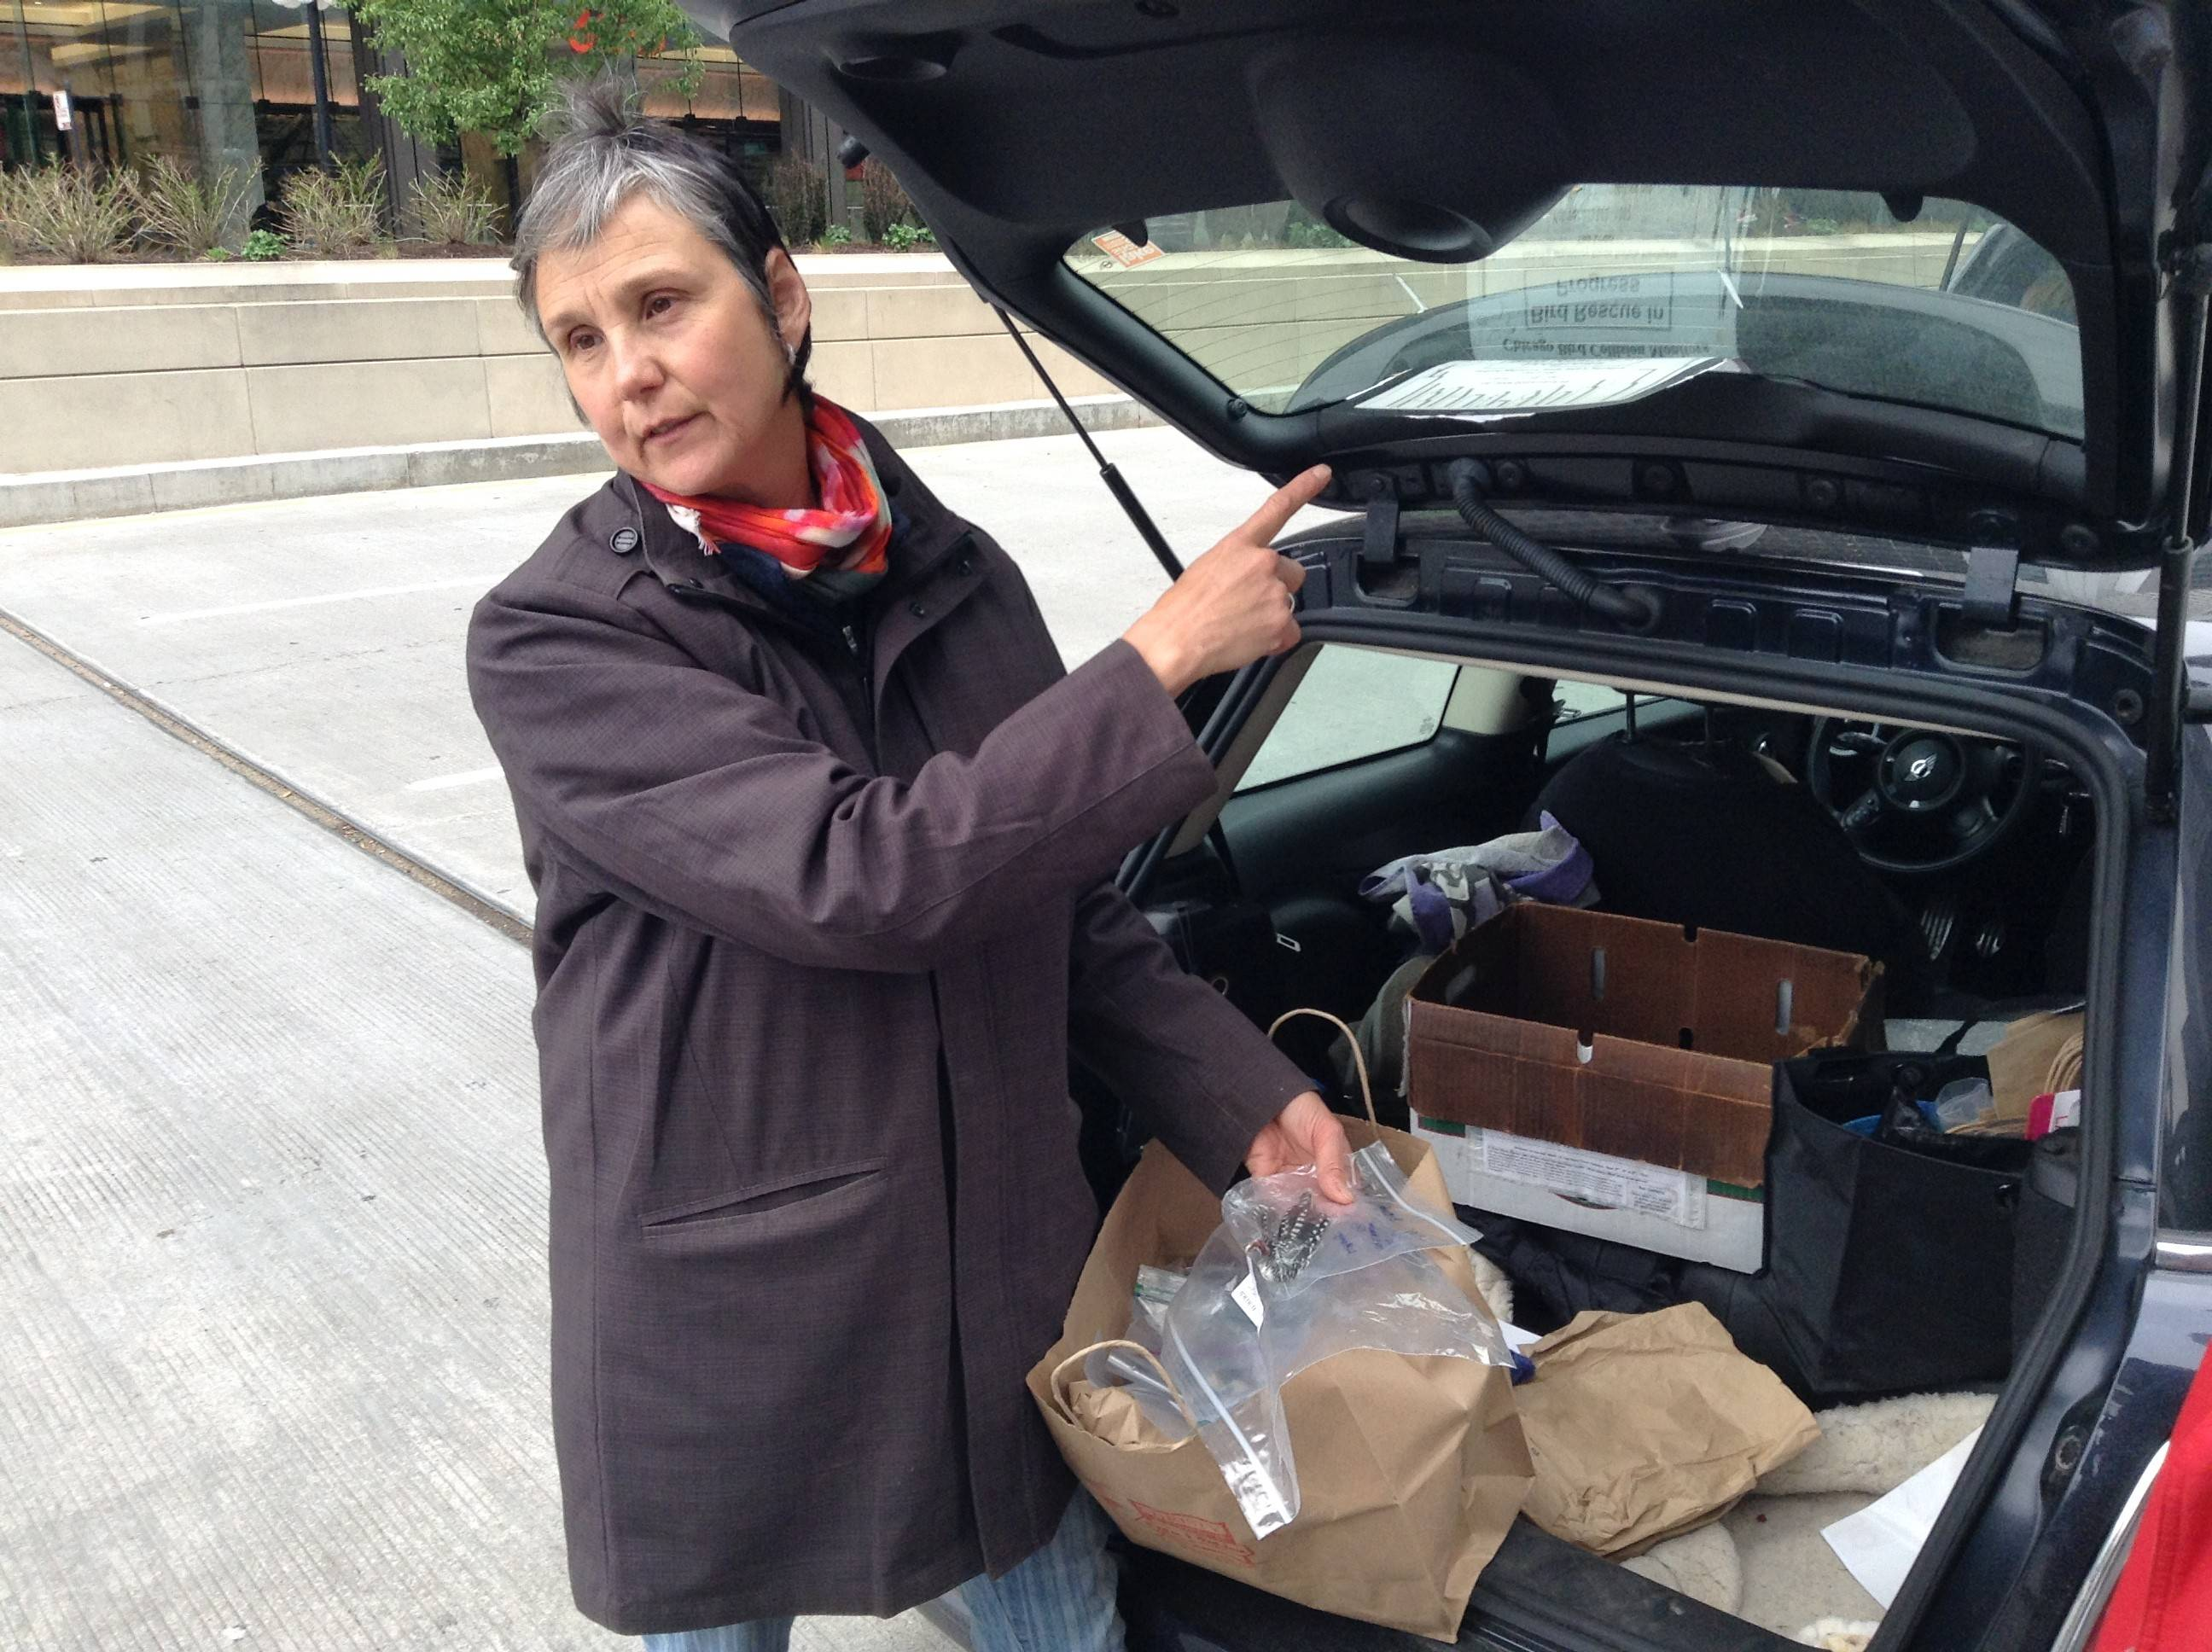 Volunteer Marina Post rescued about four live birds and recovered six dead birds during a morning earlier this month in downtown Chicago.